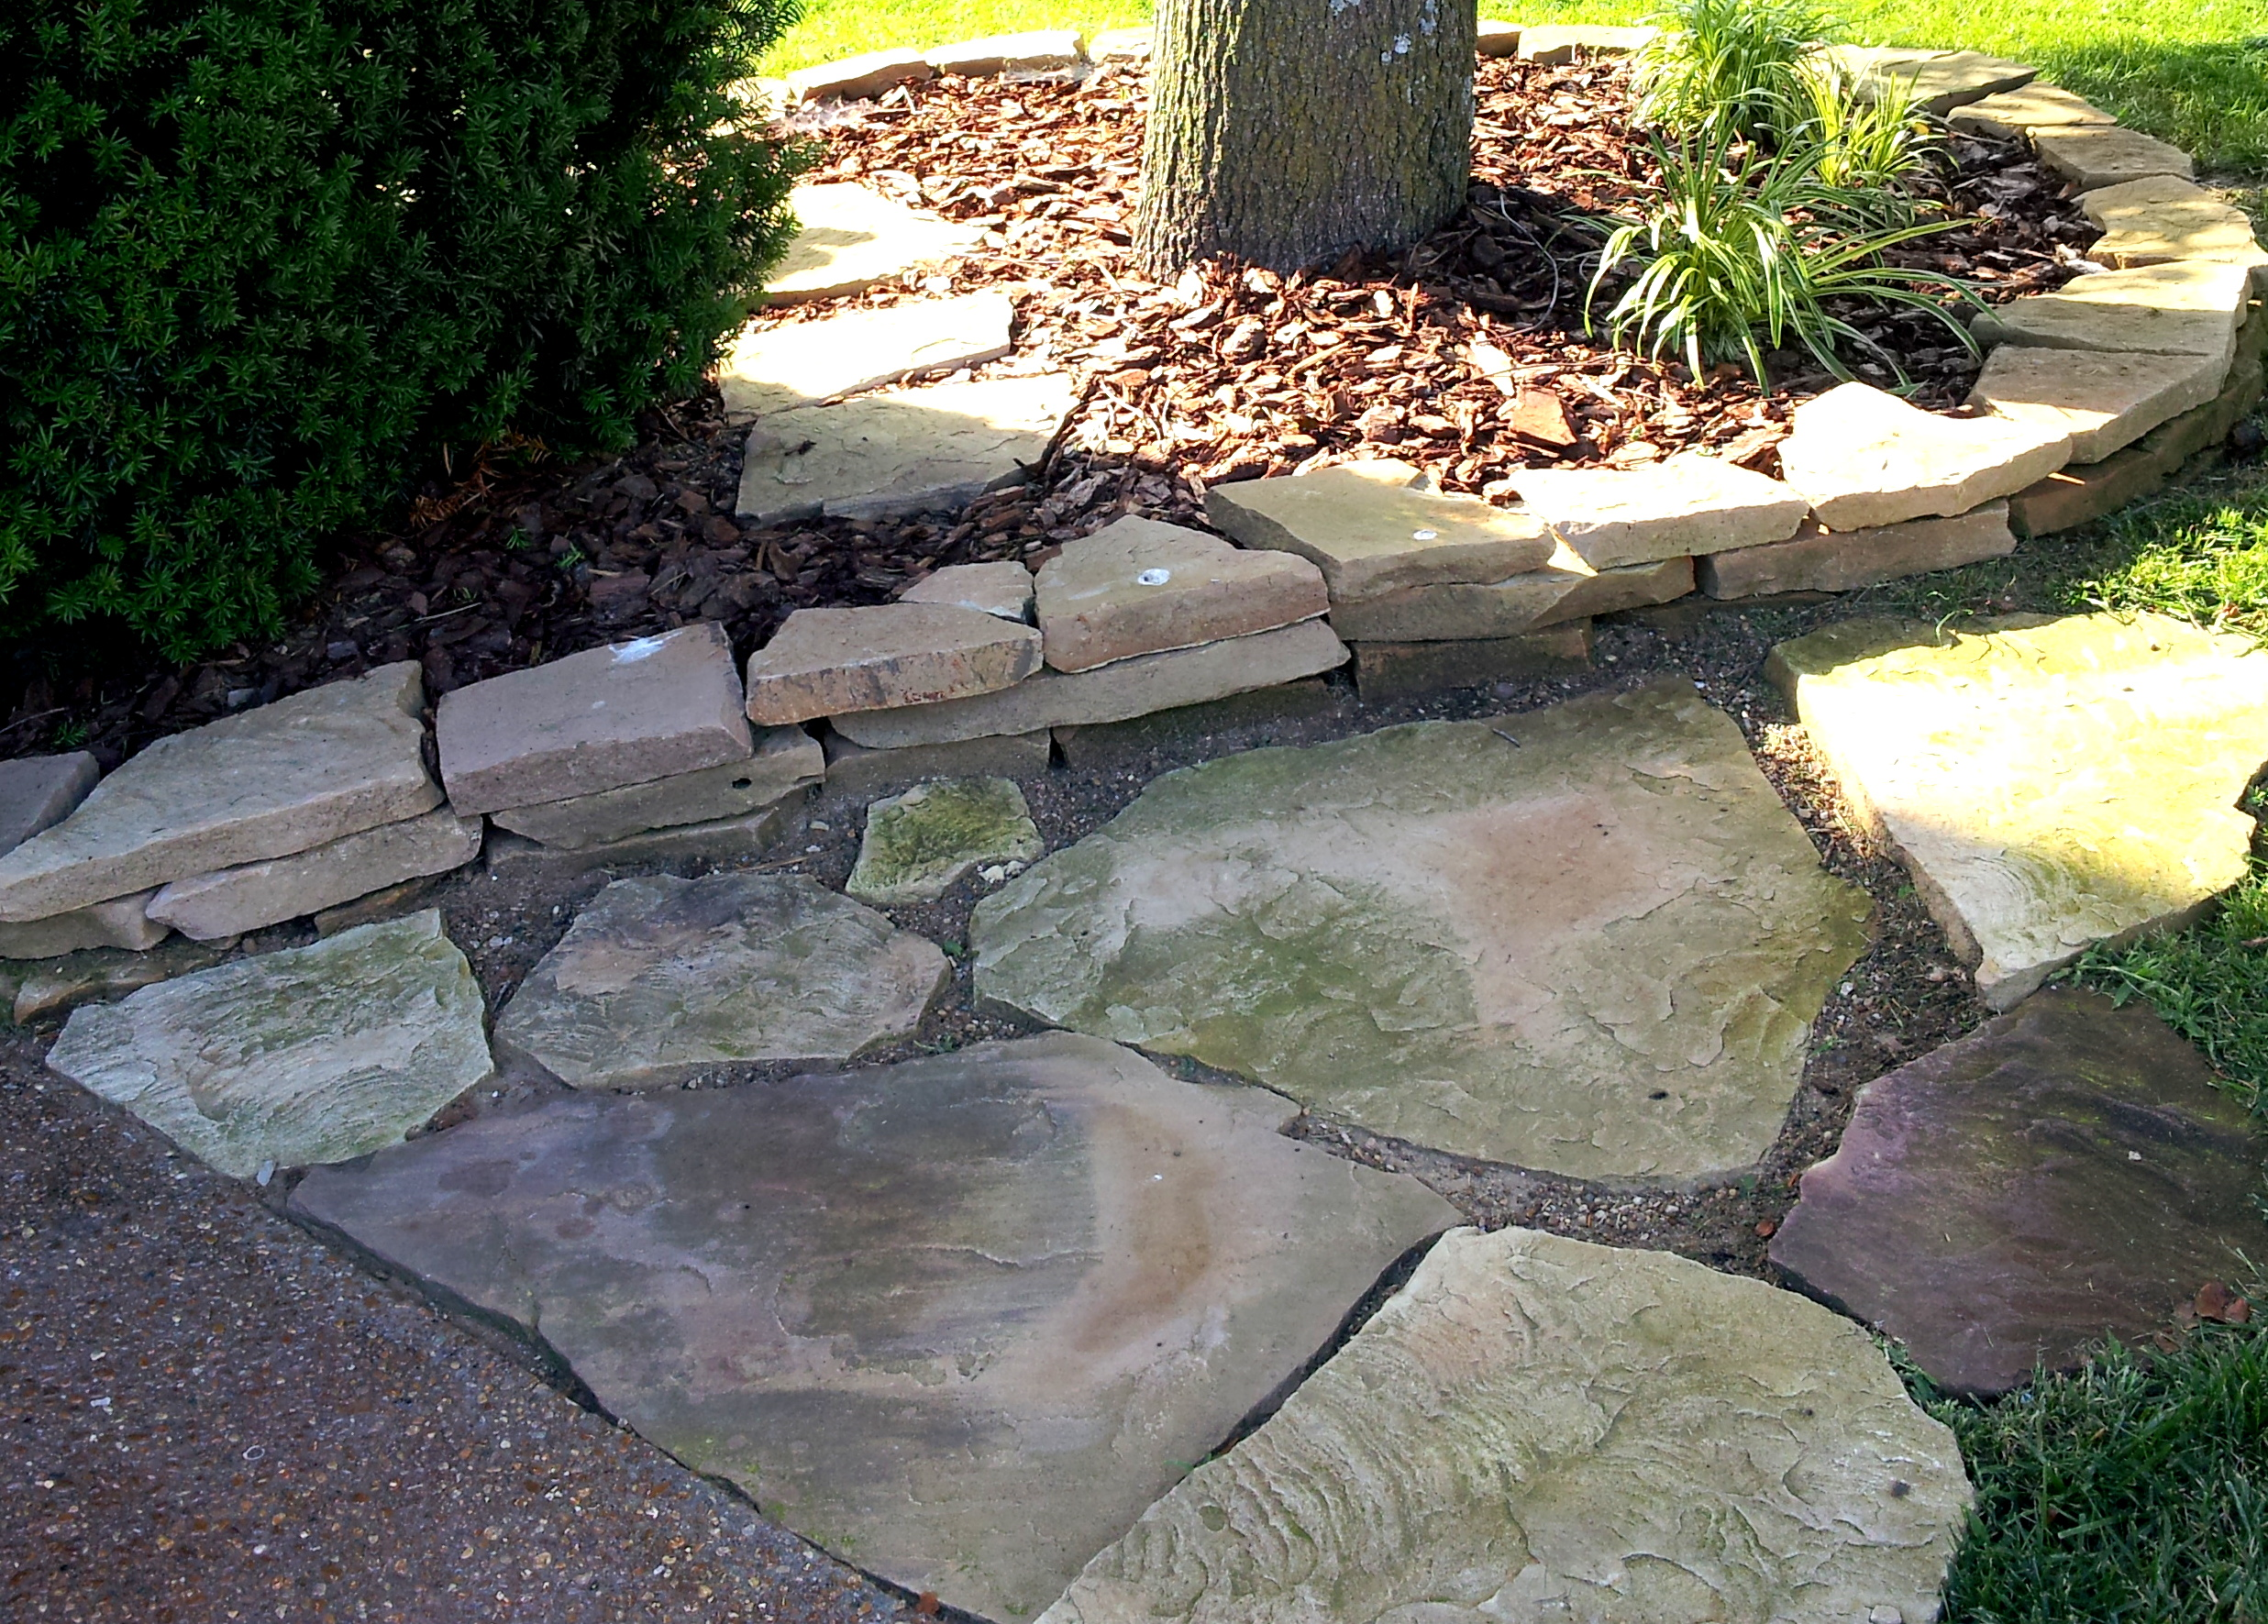 Landscaping With Rocks And Pebbles : Nashville tn franklin stone landscaping rocks mulch stones